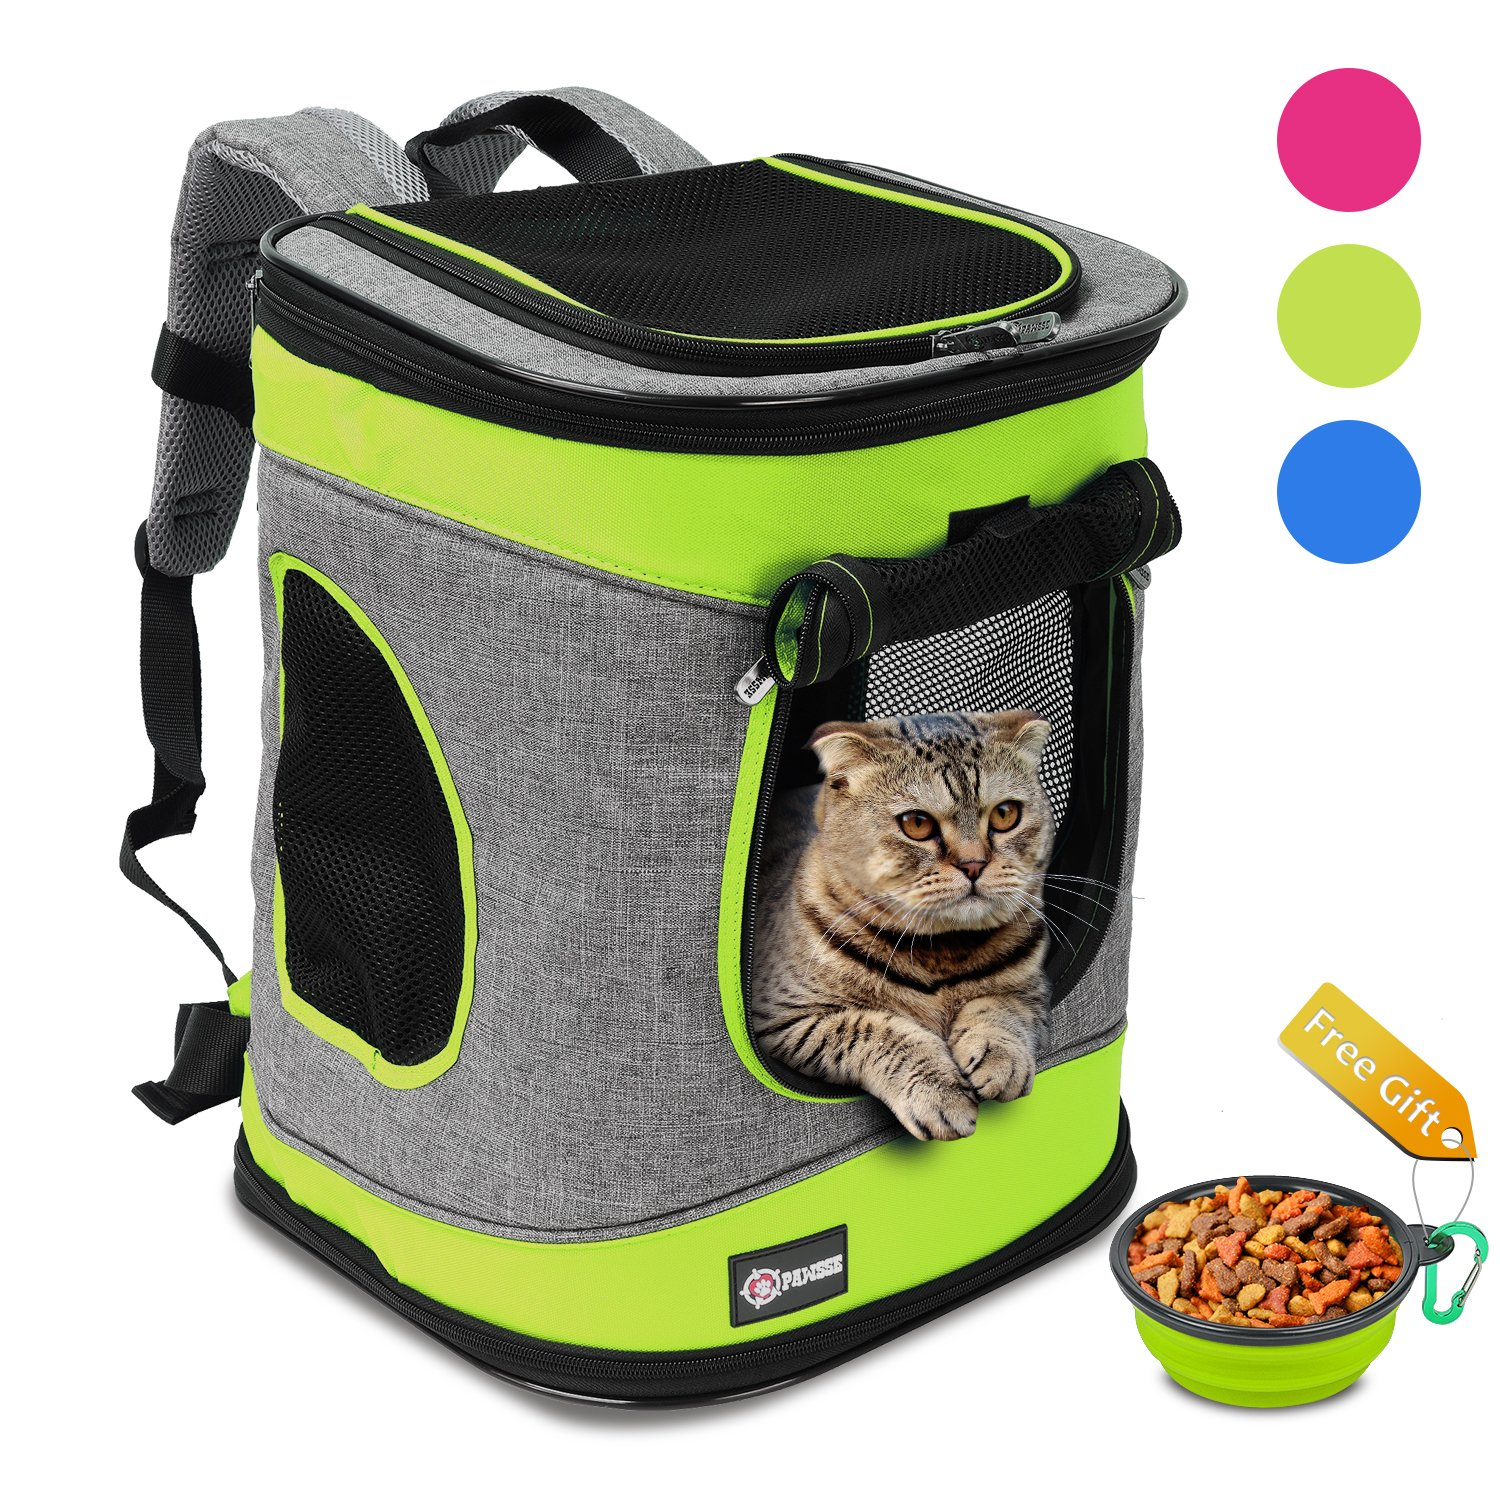 Green Pawsse Comfort Pet Carrier Backpack for Cats and Dogs up to 15 LBS Outdoor Travel Carrier for Pets Hiking, Walking, Cycling & Outdoor Use 16  H x13.2 L x12 W Green